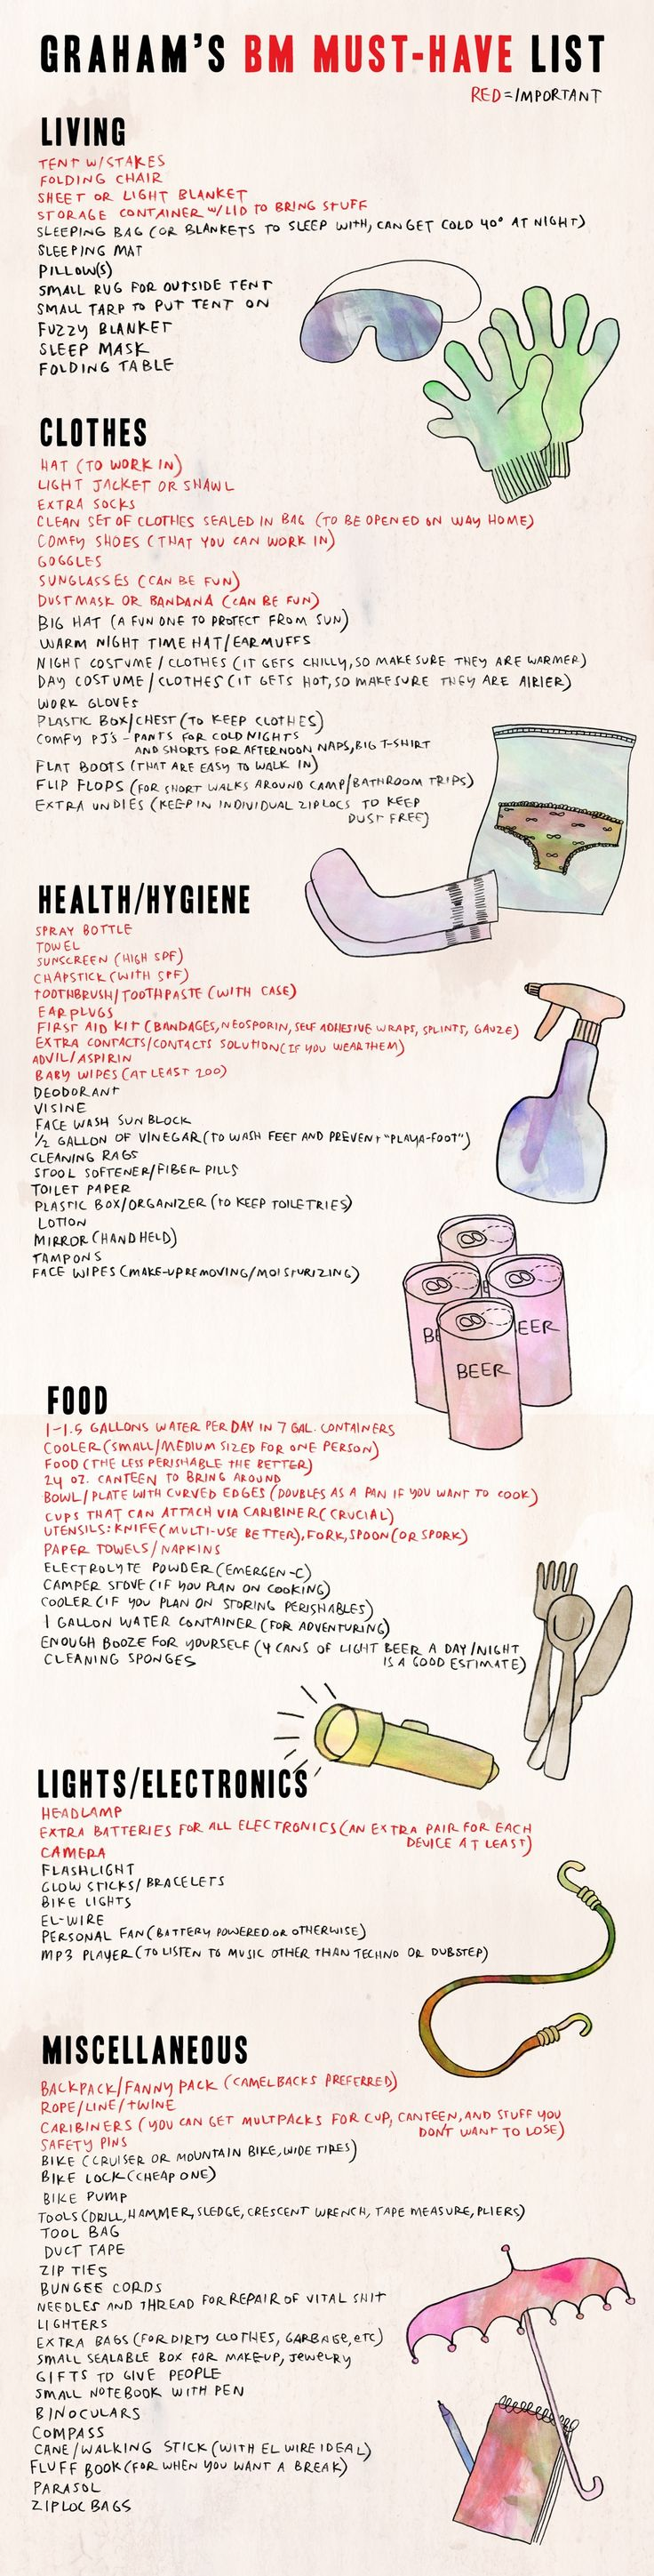 Graham Rumplestiltskin McLeod's epic Burning Man packing list, illustrated by Christopher Appelgren | even though Burning Man 2014 just ended, this is a good list to keep handy for next year #BurningMan